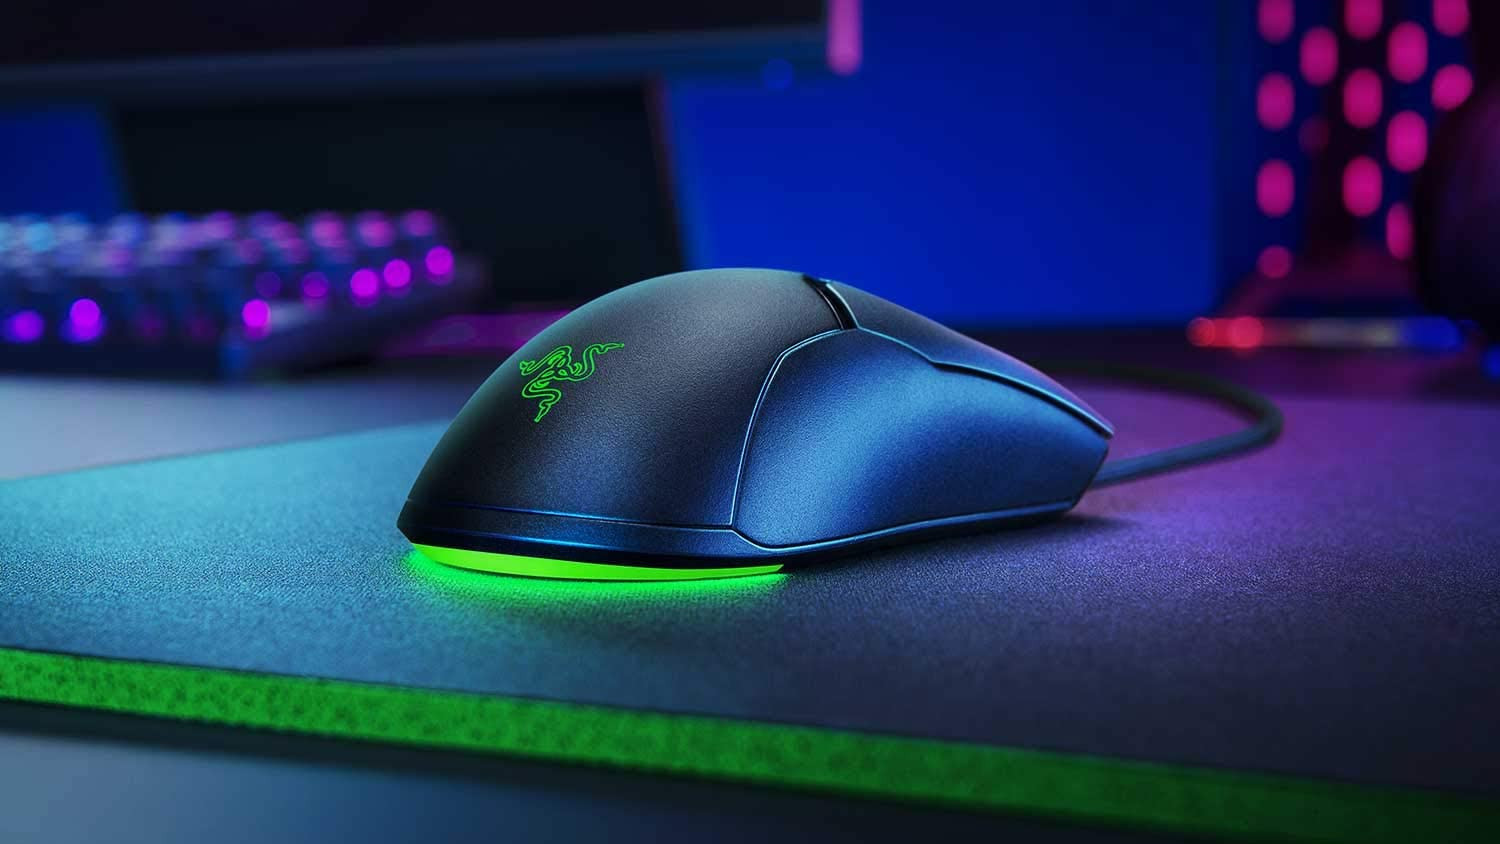 Razer's Viper Mini gaming mouse is now just $30